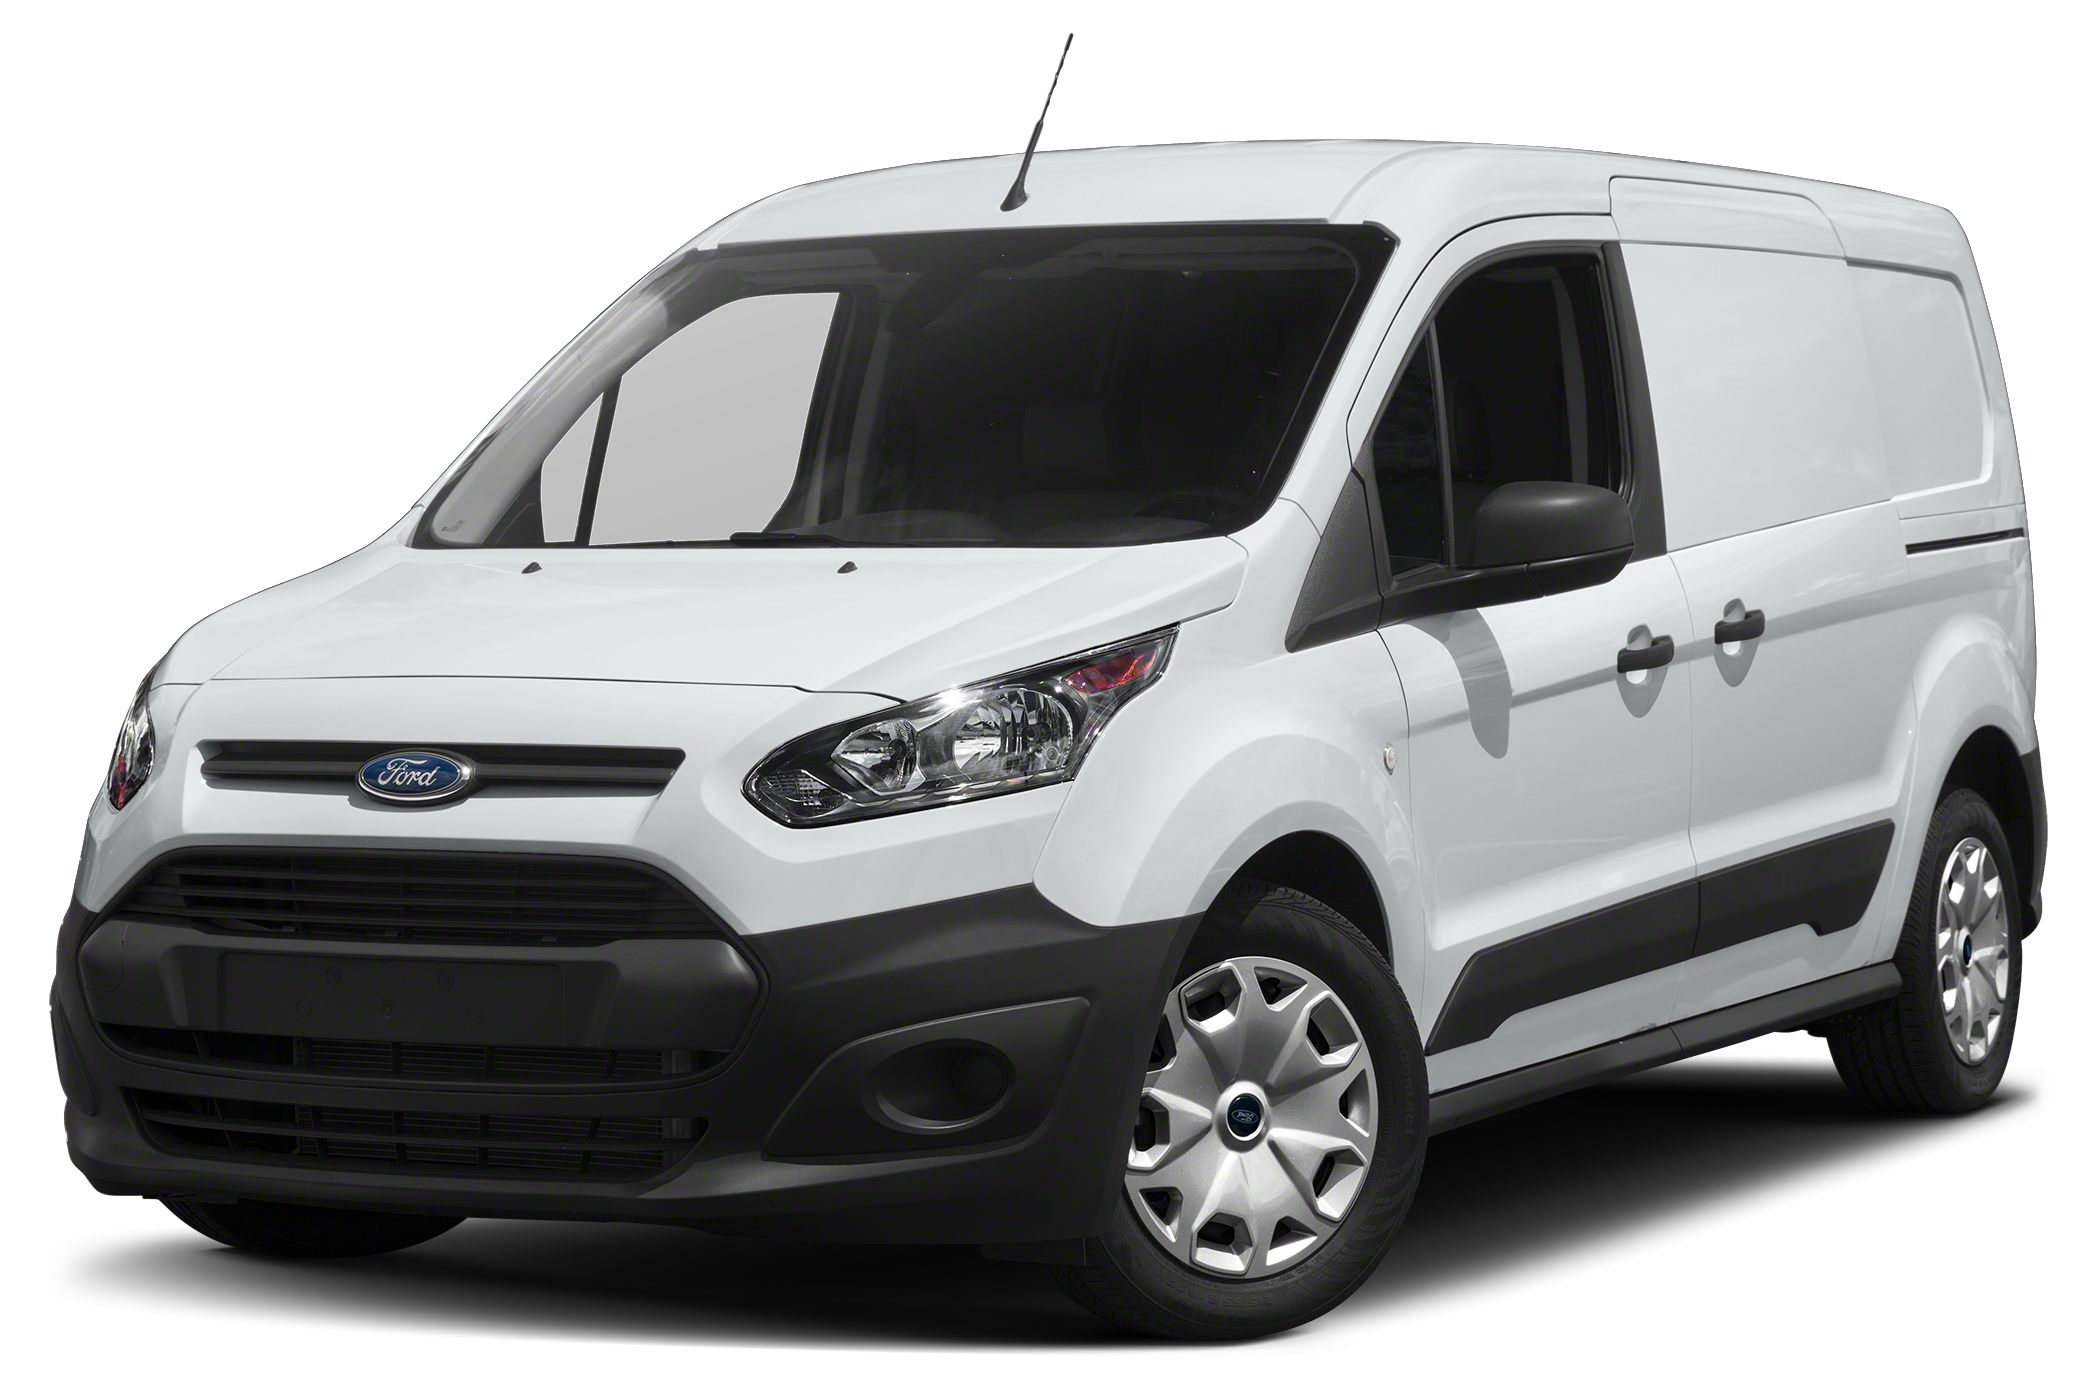 2017 ford transit connect xl cars and vehicles fort walton beach fl. Black Bedroom Furniture Sets. Home Design Ideas